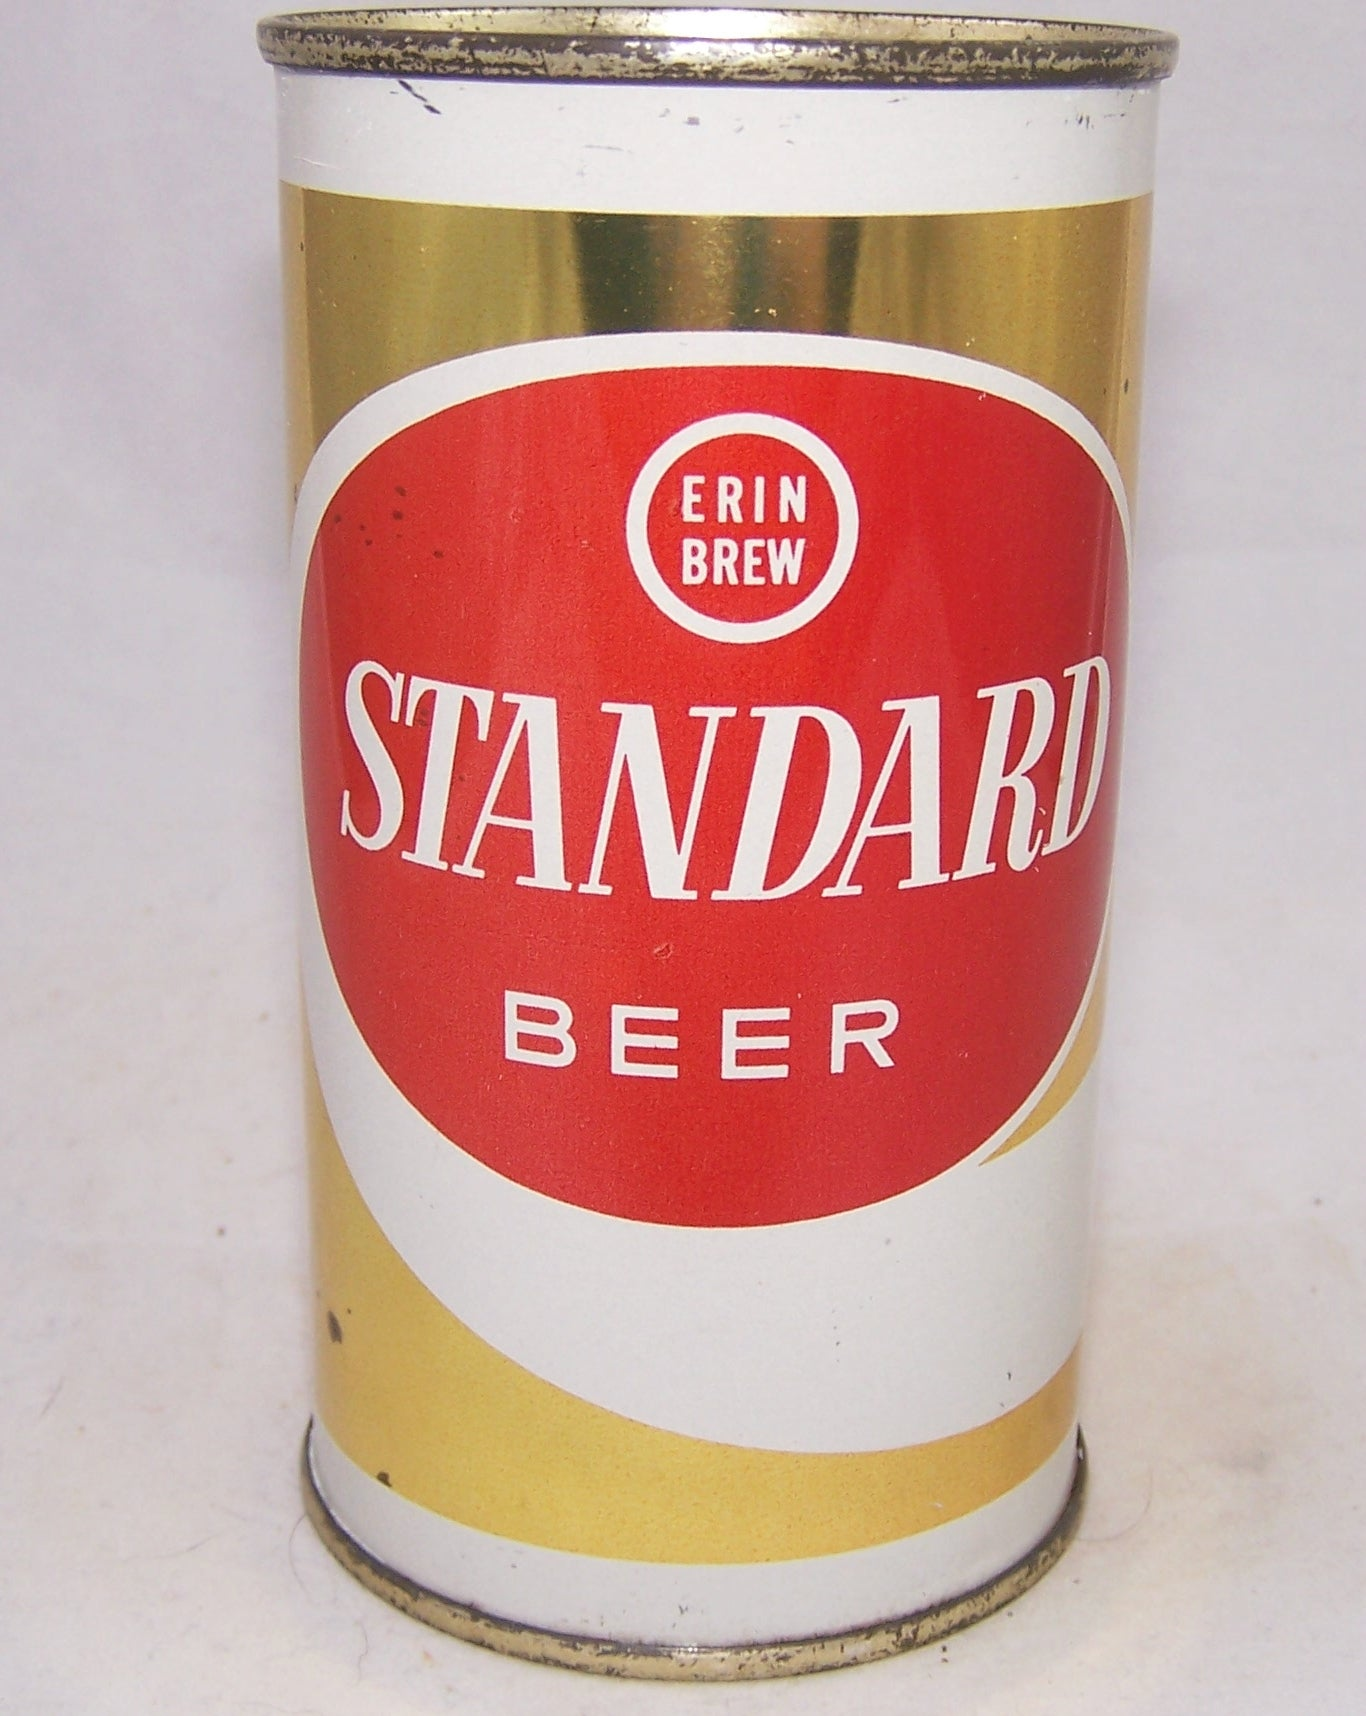 Erin Brew Standard, USBC 135-37, Grade 1/1+ Sold on 07/20/19